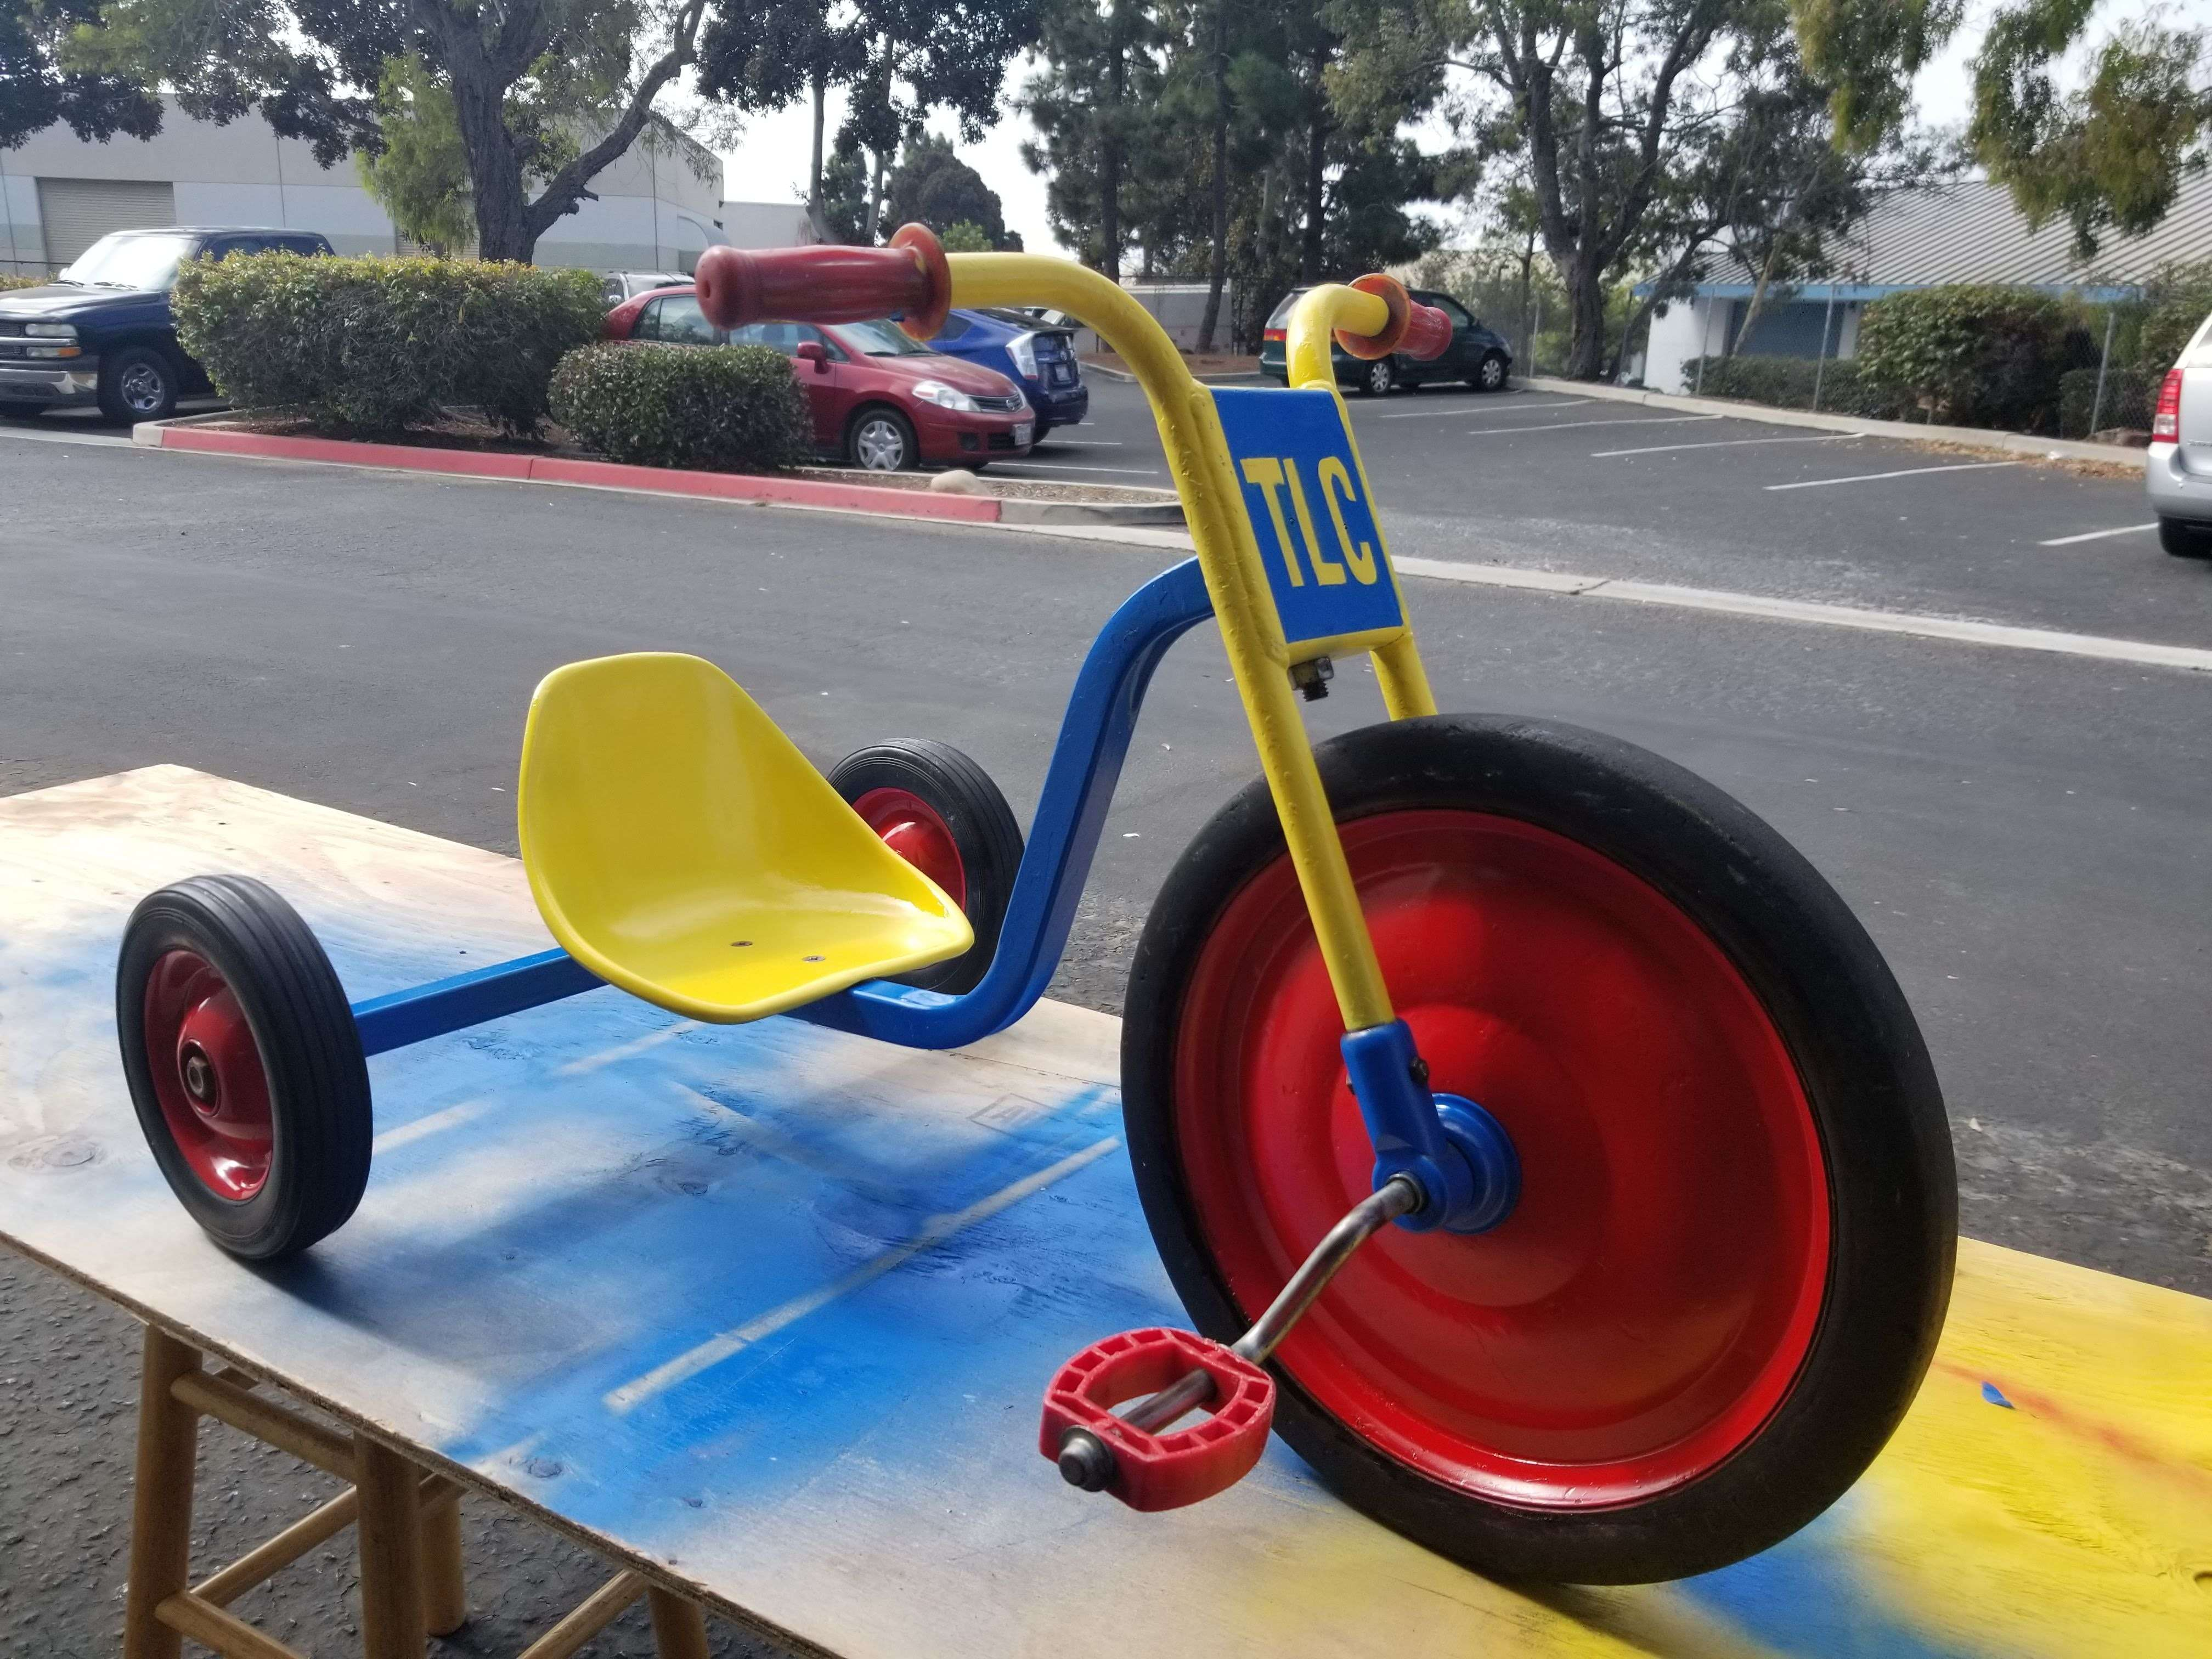 Vintage tricycle in red, yellow and blue with TLC plate